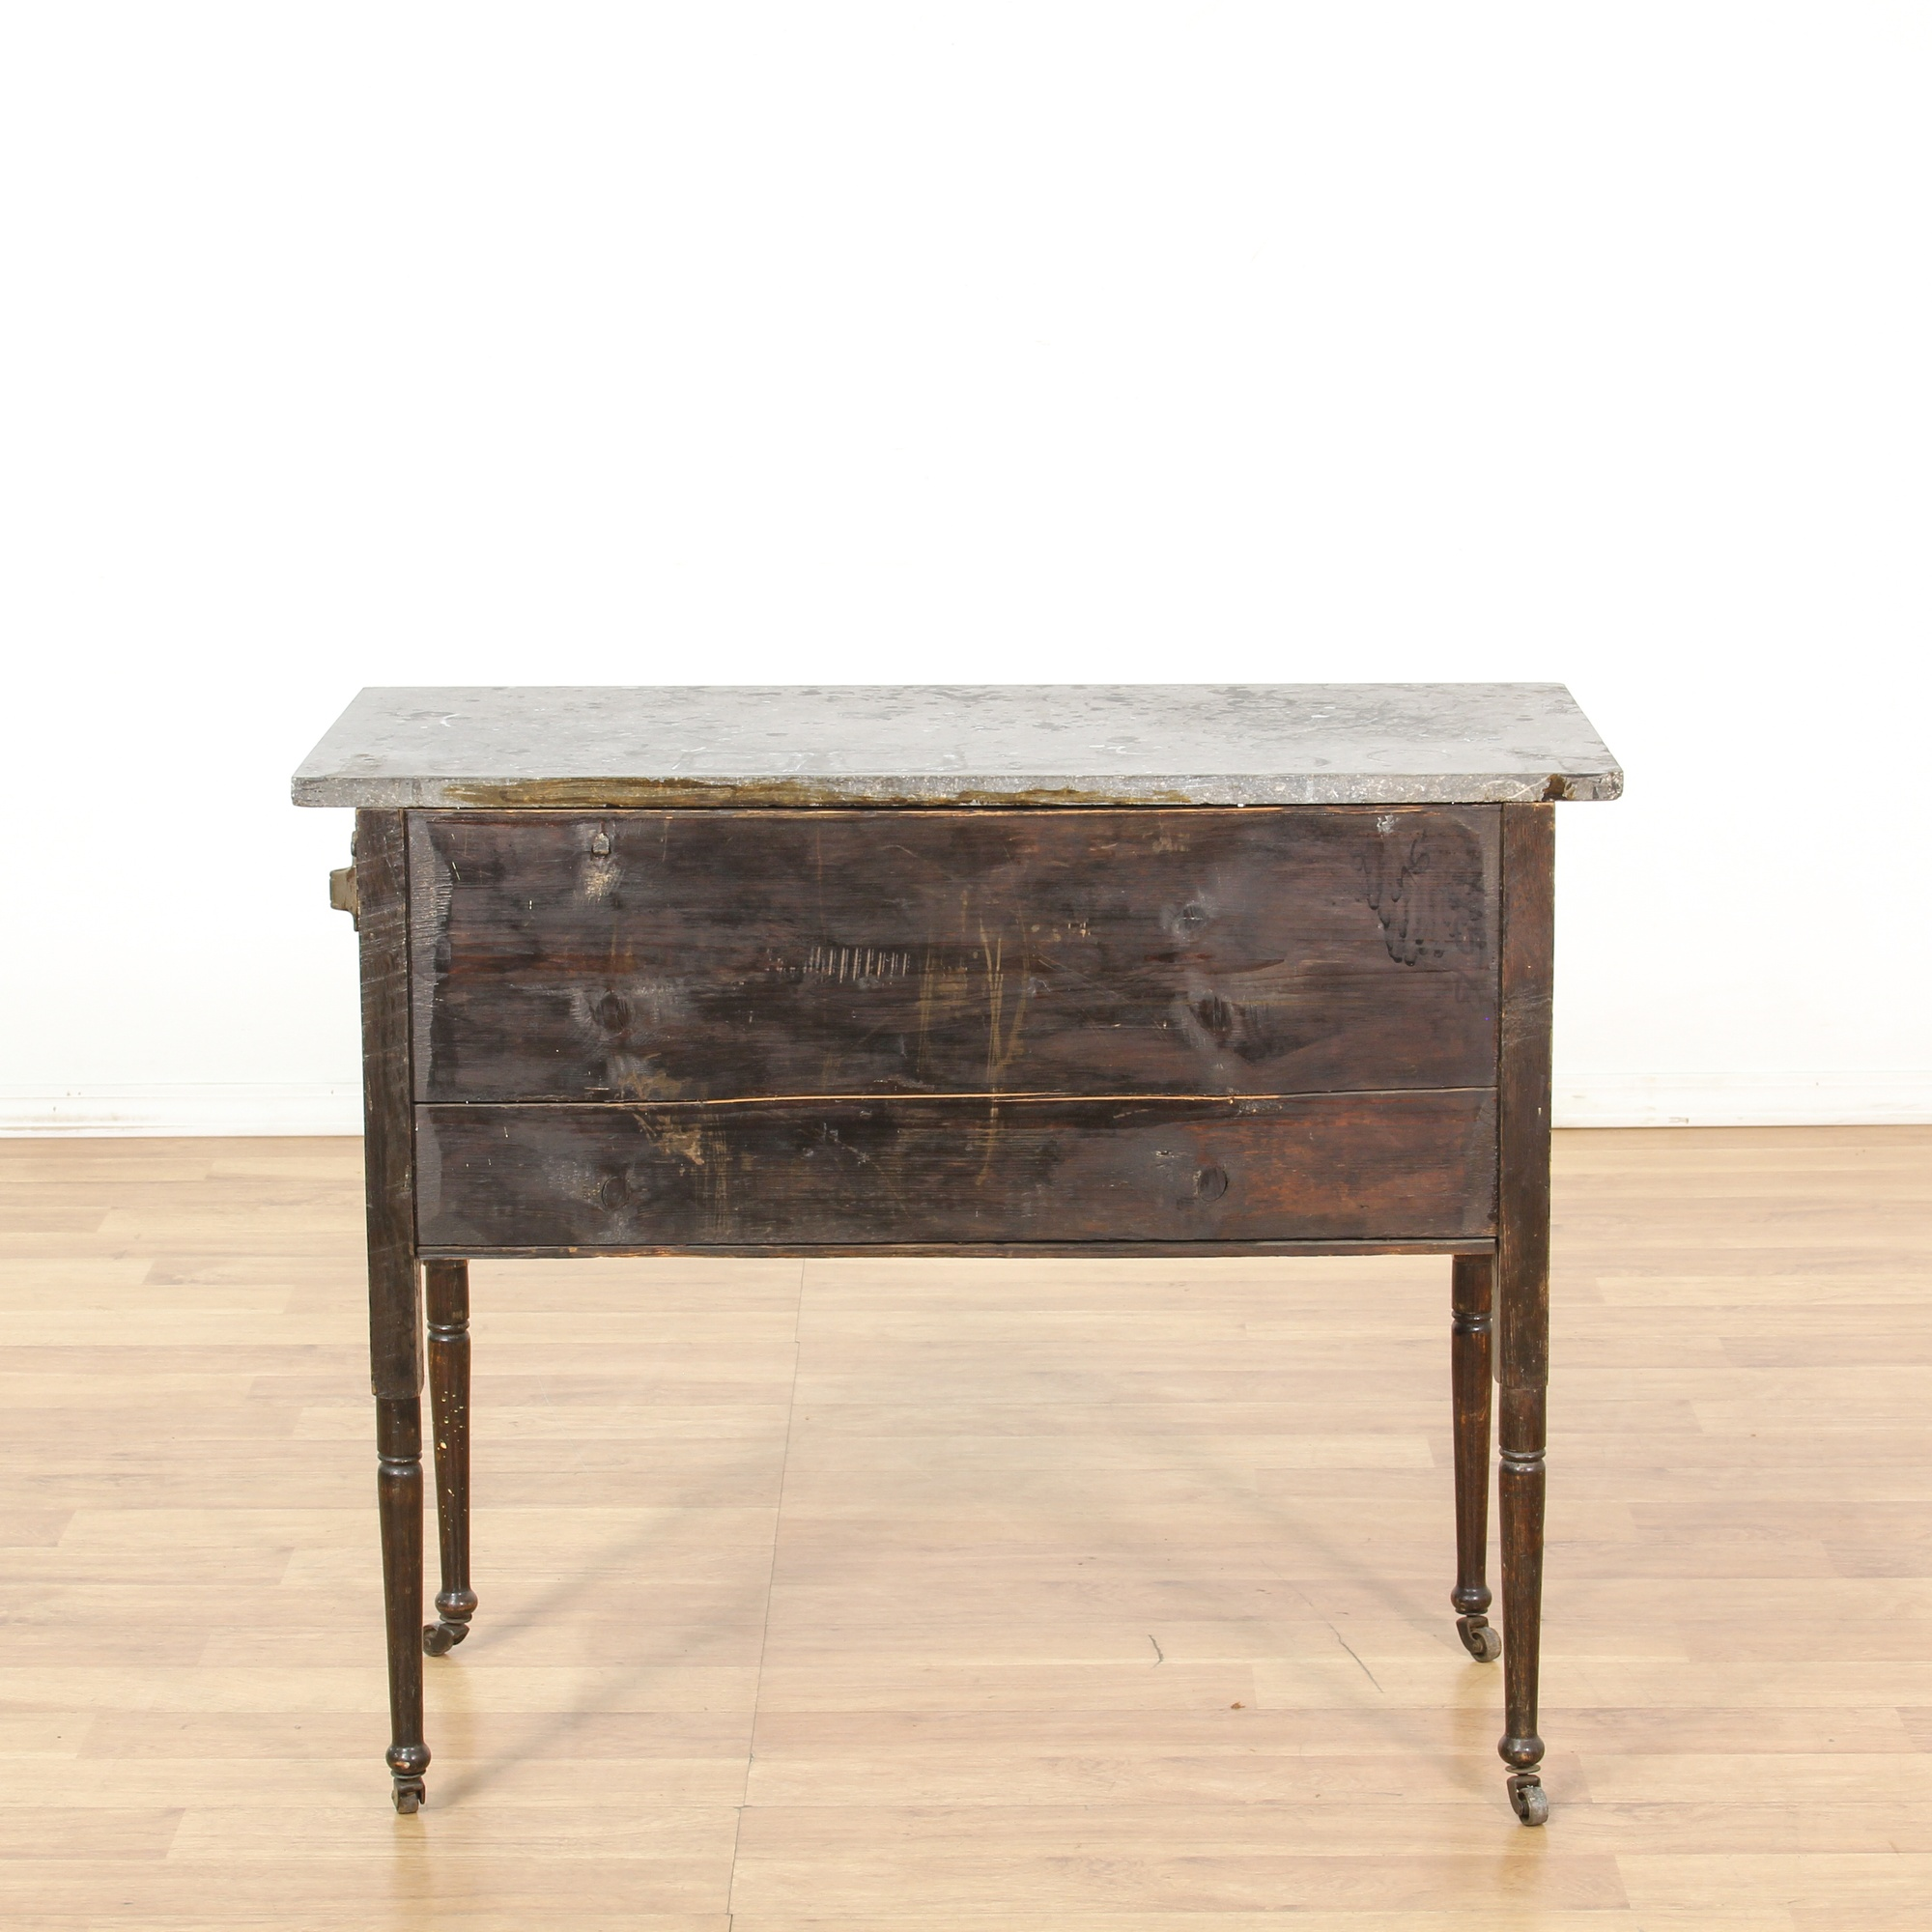 Rustic Distressed Antique Washstand Bar Cabinet Loveseat Vintage Furniture San Diego Los Angeles